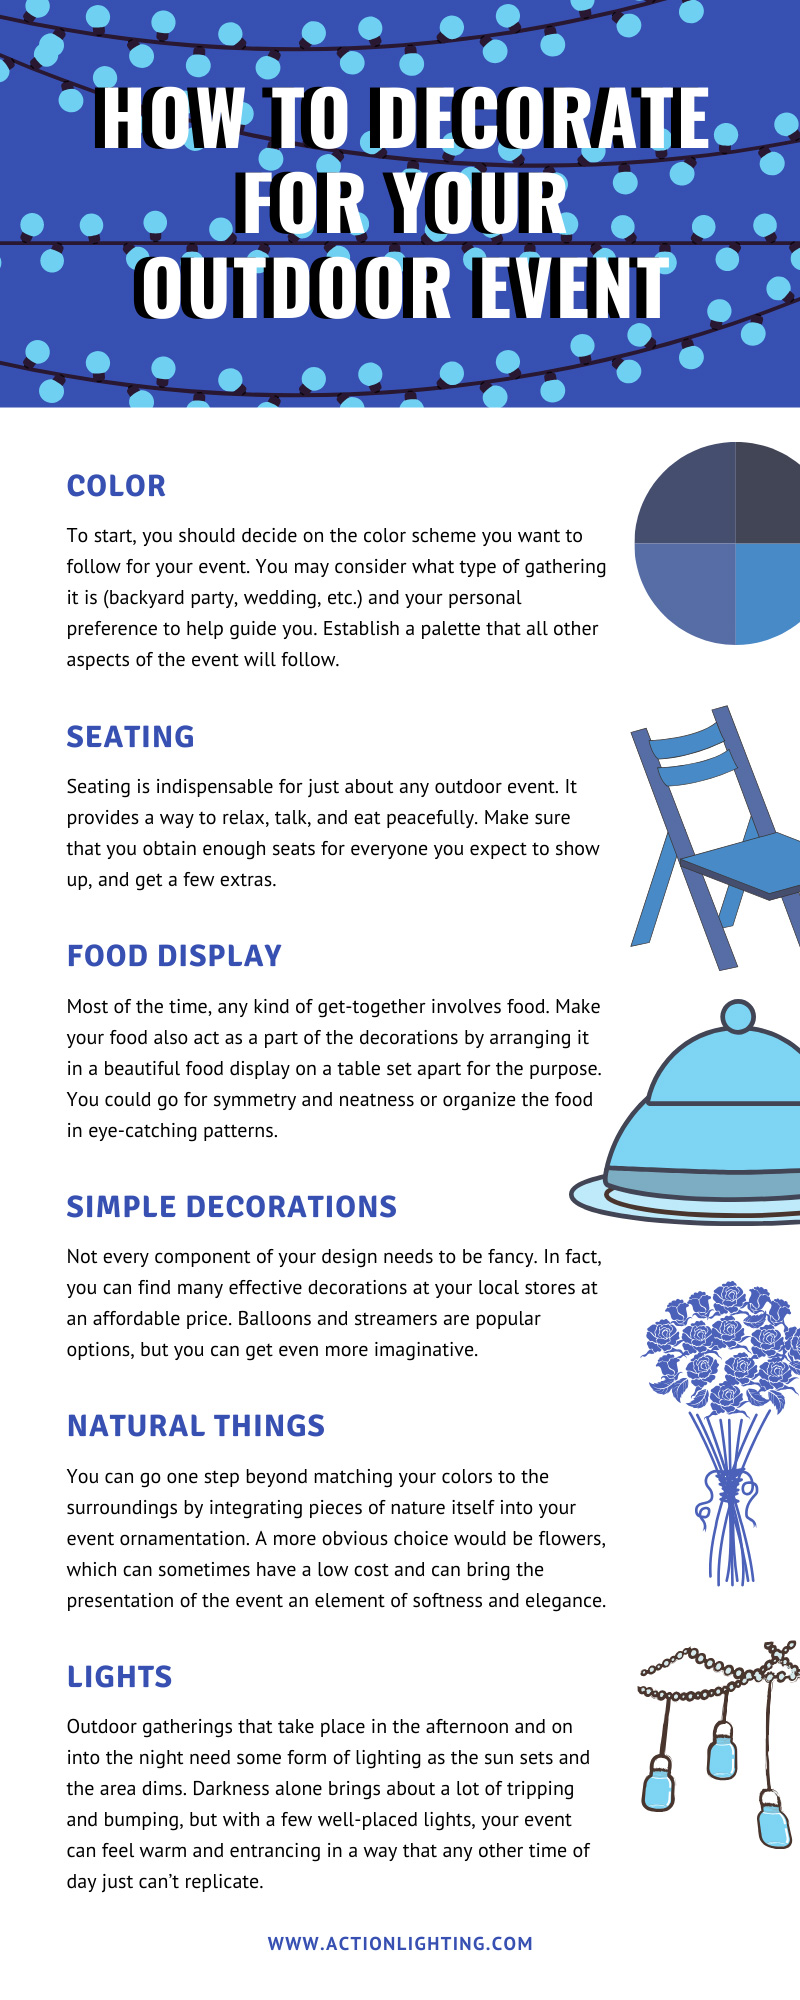 How to Decorate for Your Outdoor Event